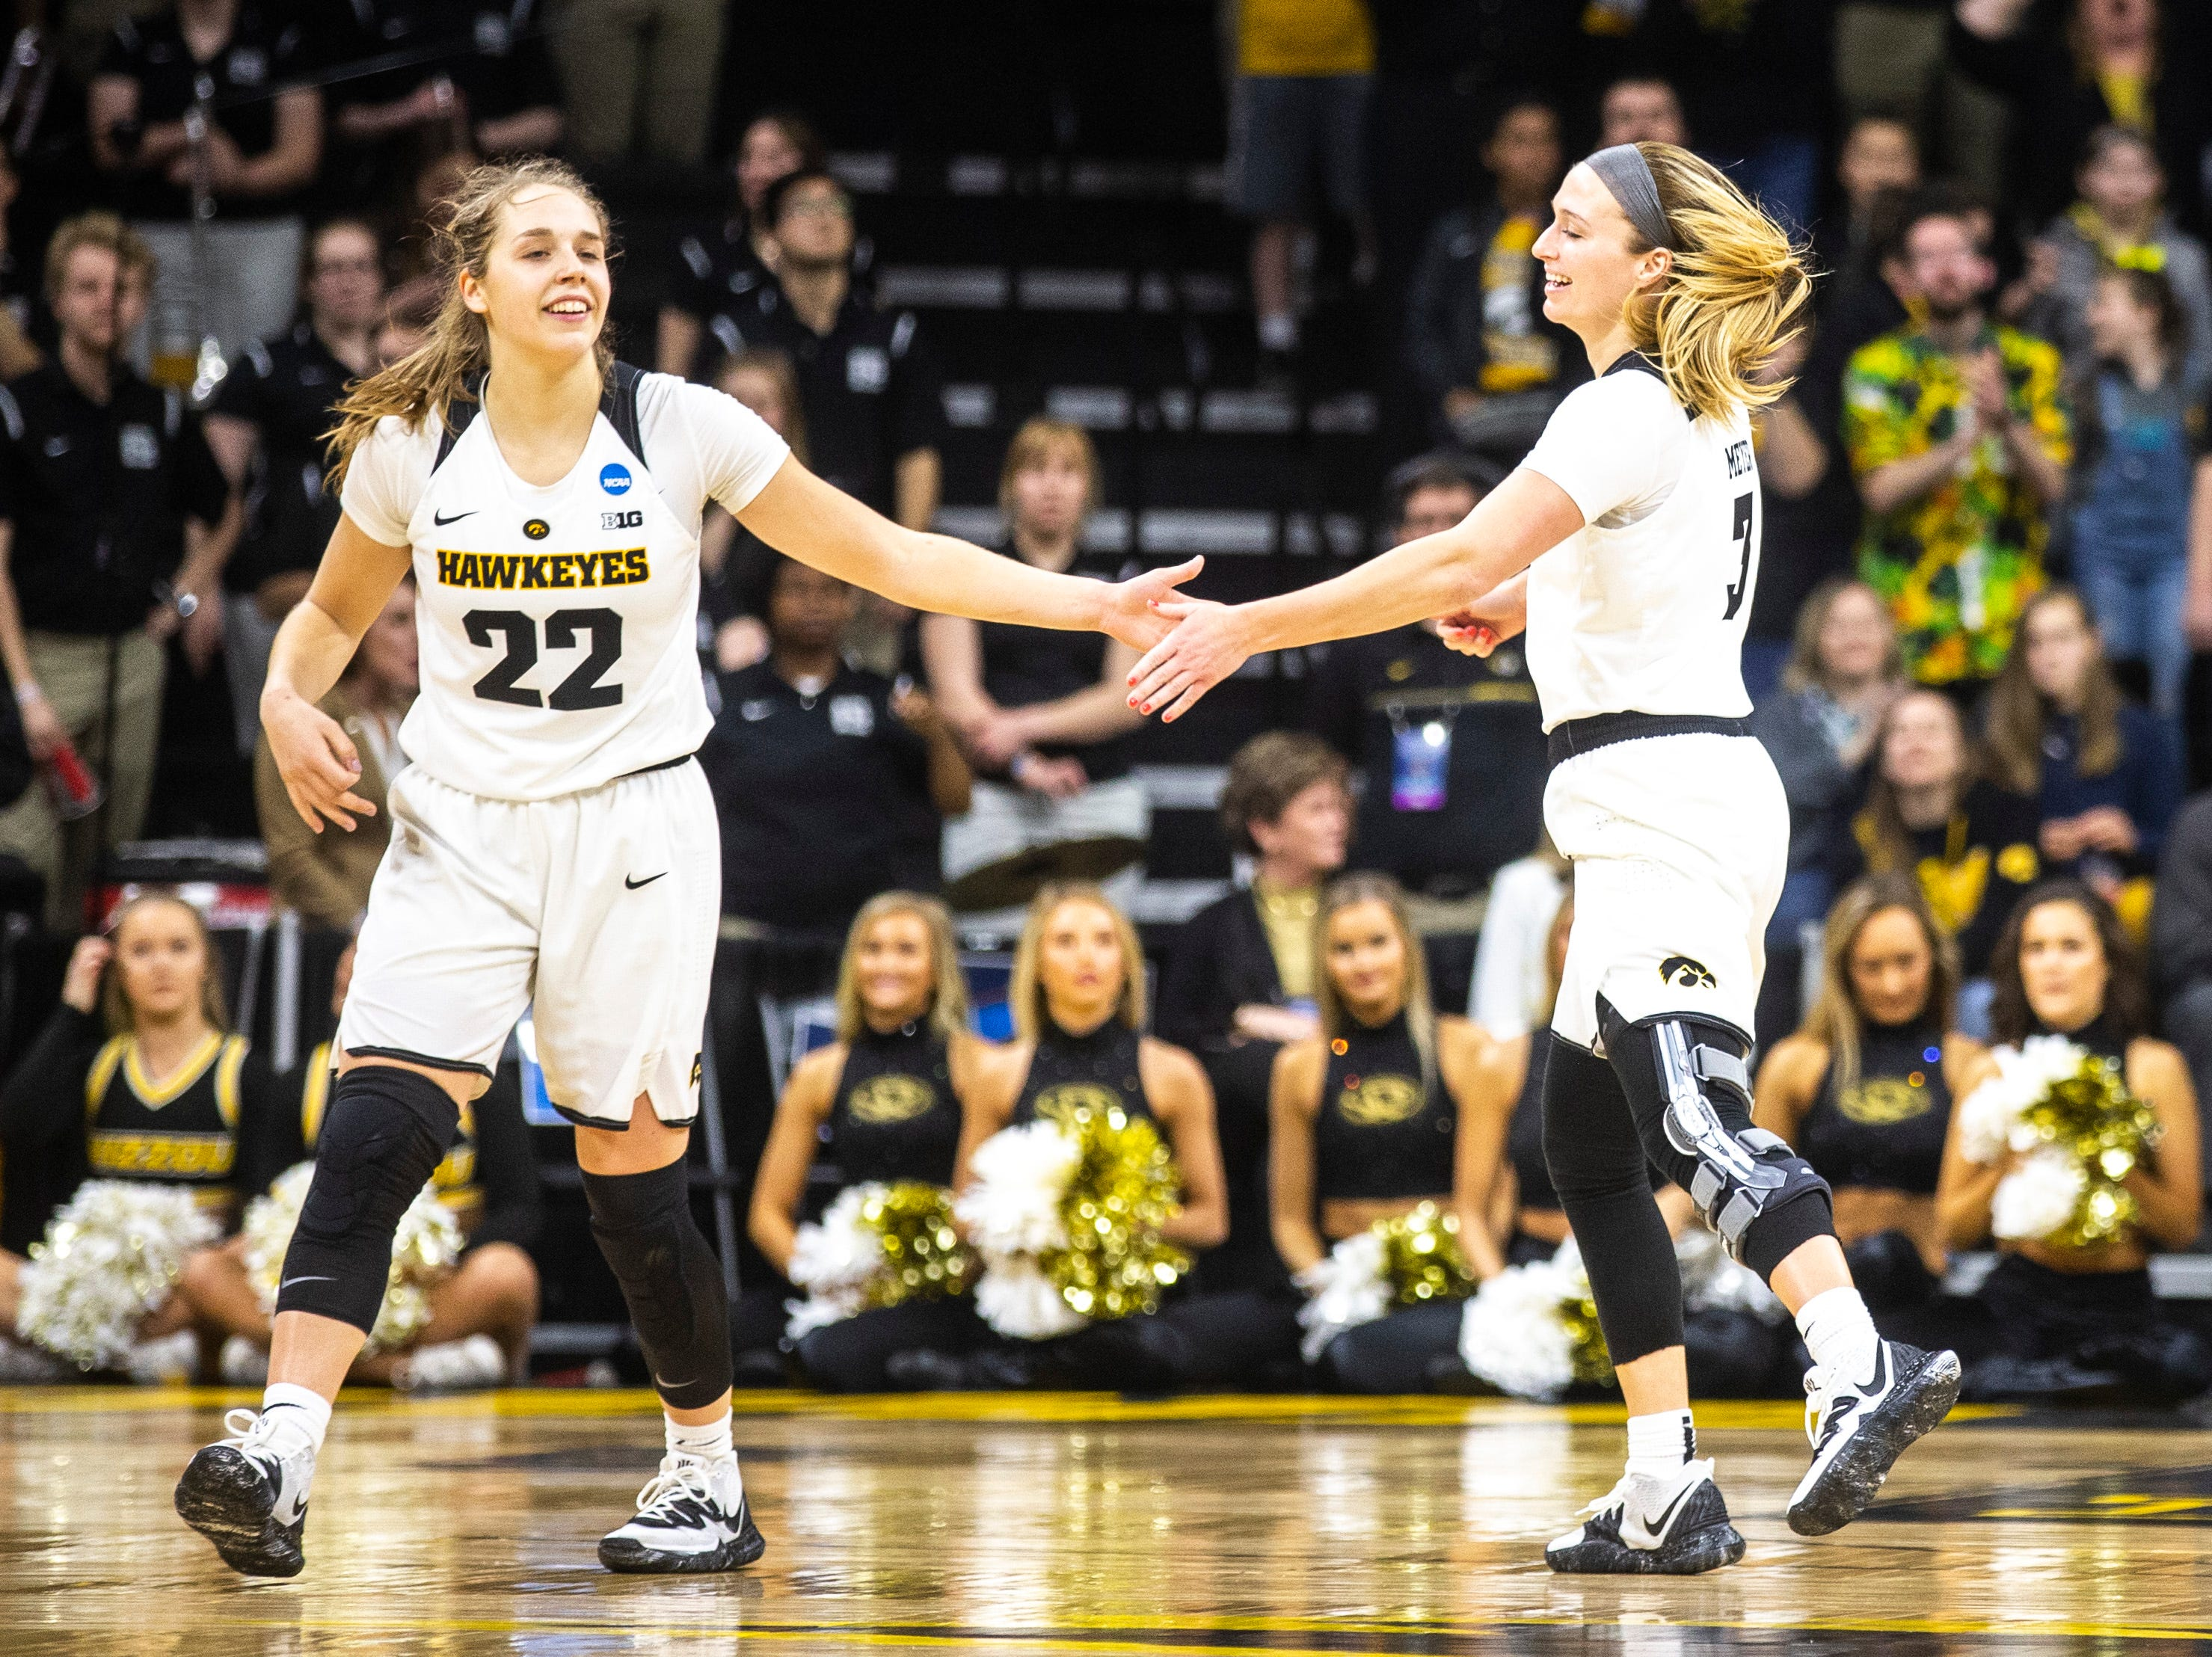 Iowa guard Kathleen Doyle (22) high-fives Iowa guard Makenzie Meyer (3) during a NCAA women's basketball tournament second-round game, Sunday, March 24, 2019, at Carver-Hawkeye Arena in Iowa City, Iowa.